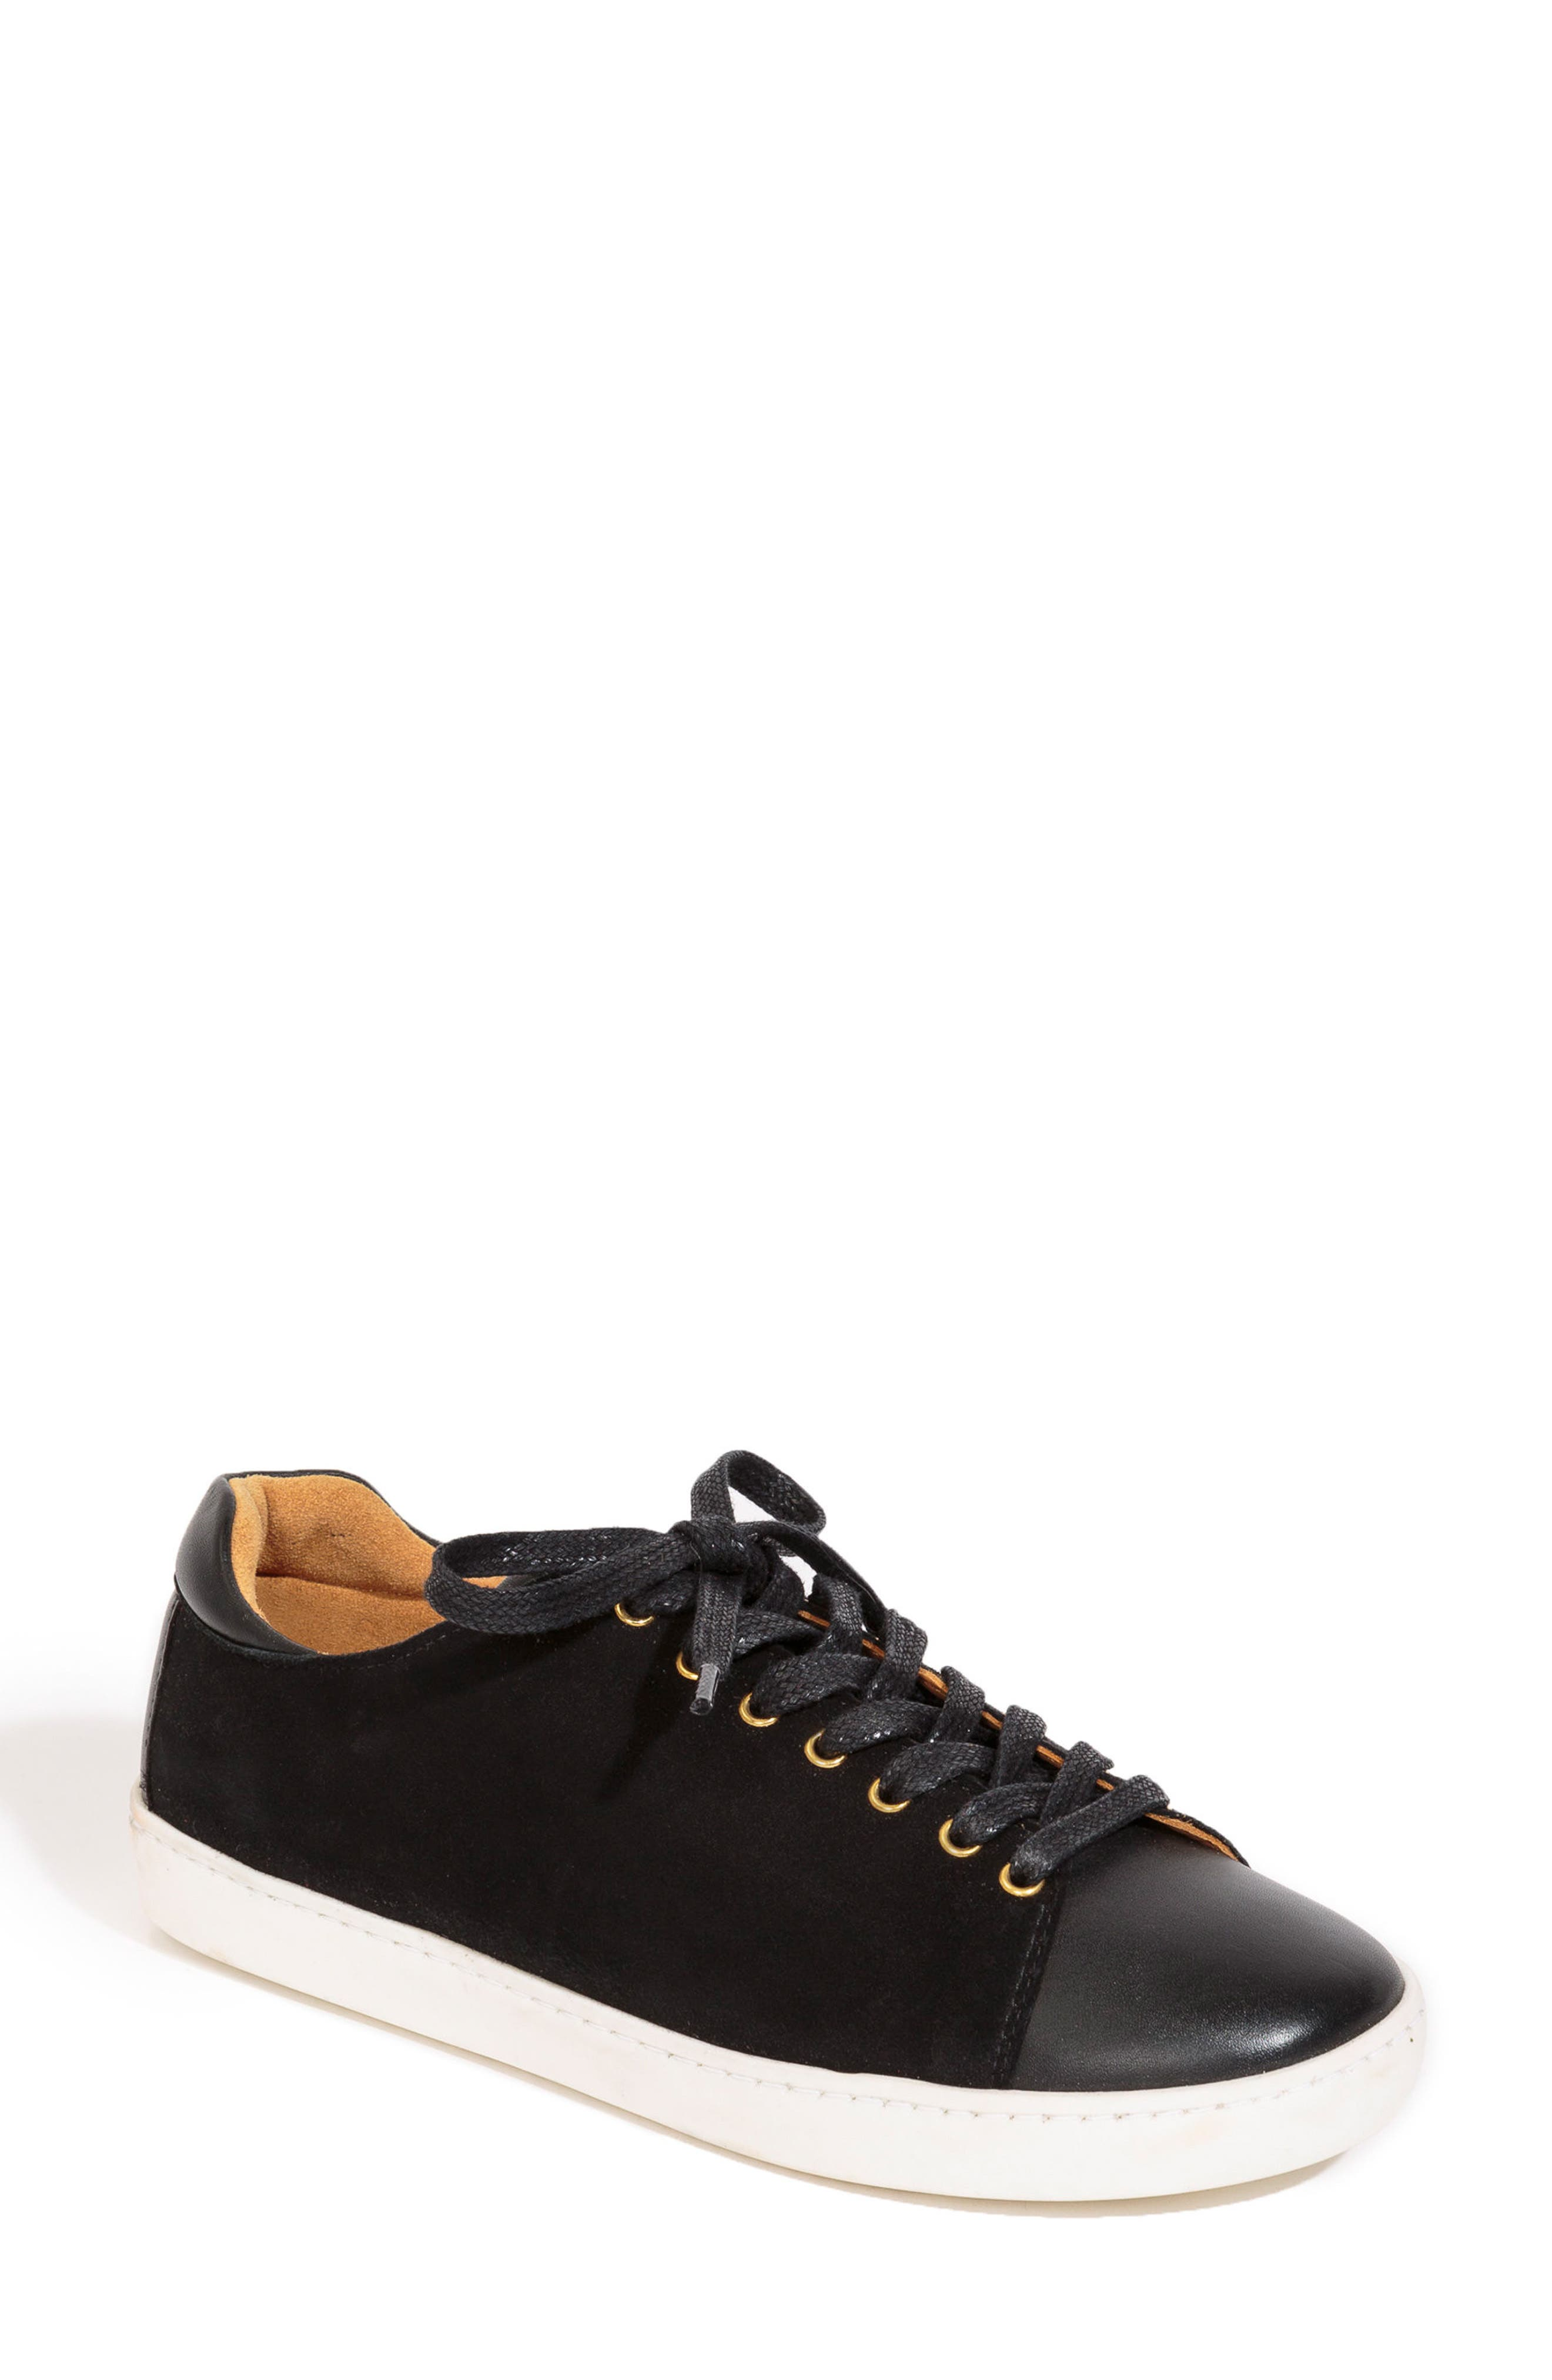 Jack Sneaker,                         Main,                         color, BLACK SUEDE